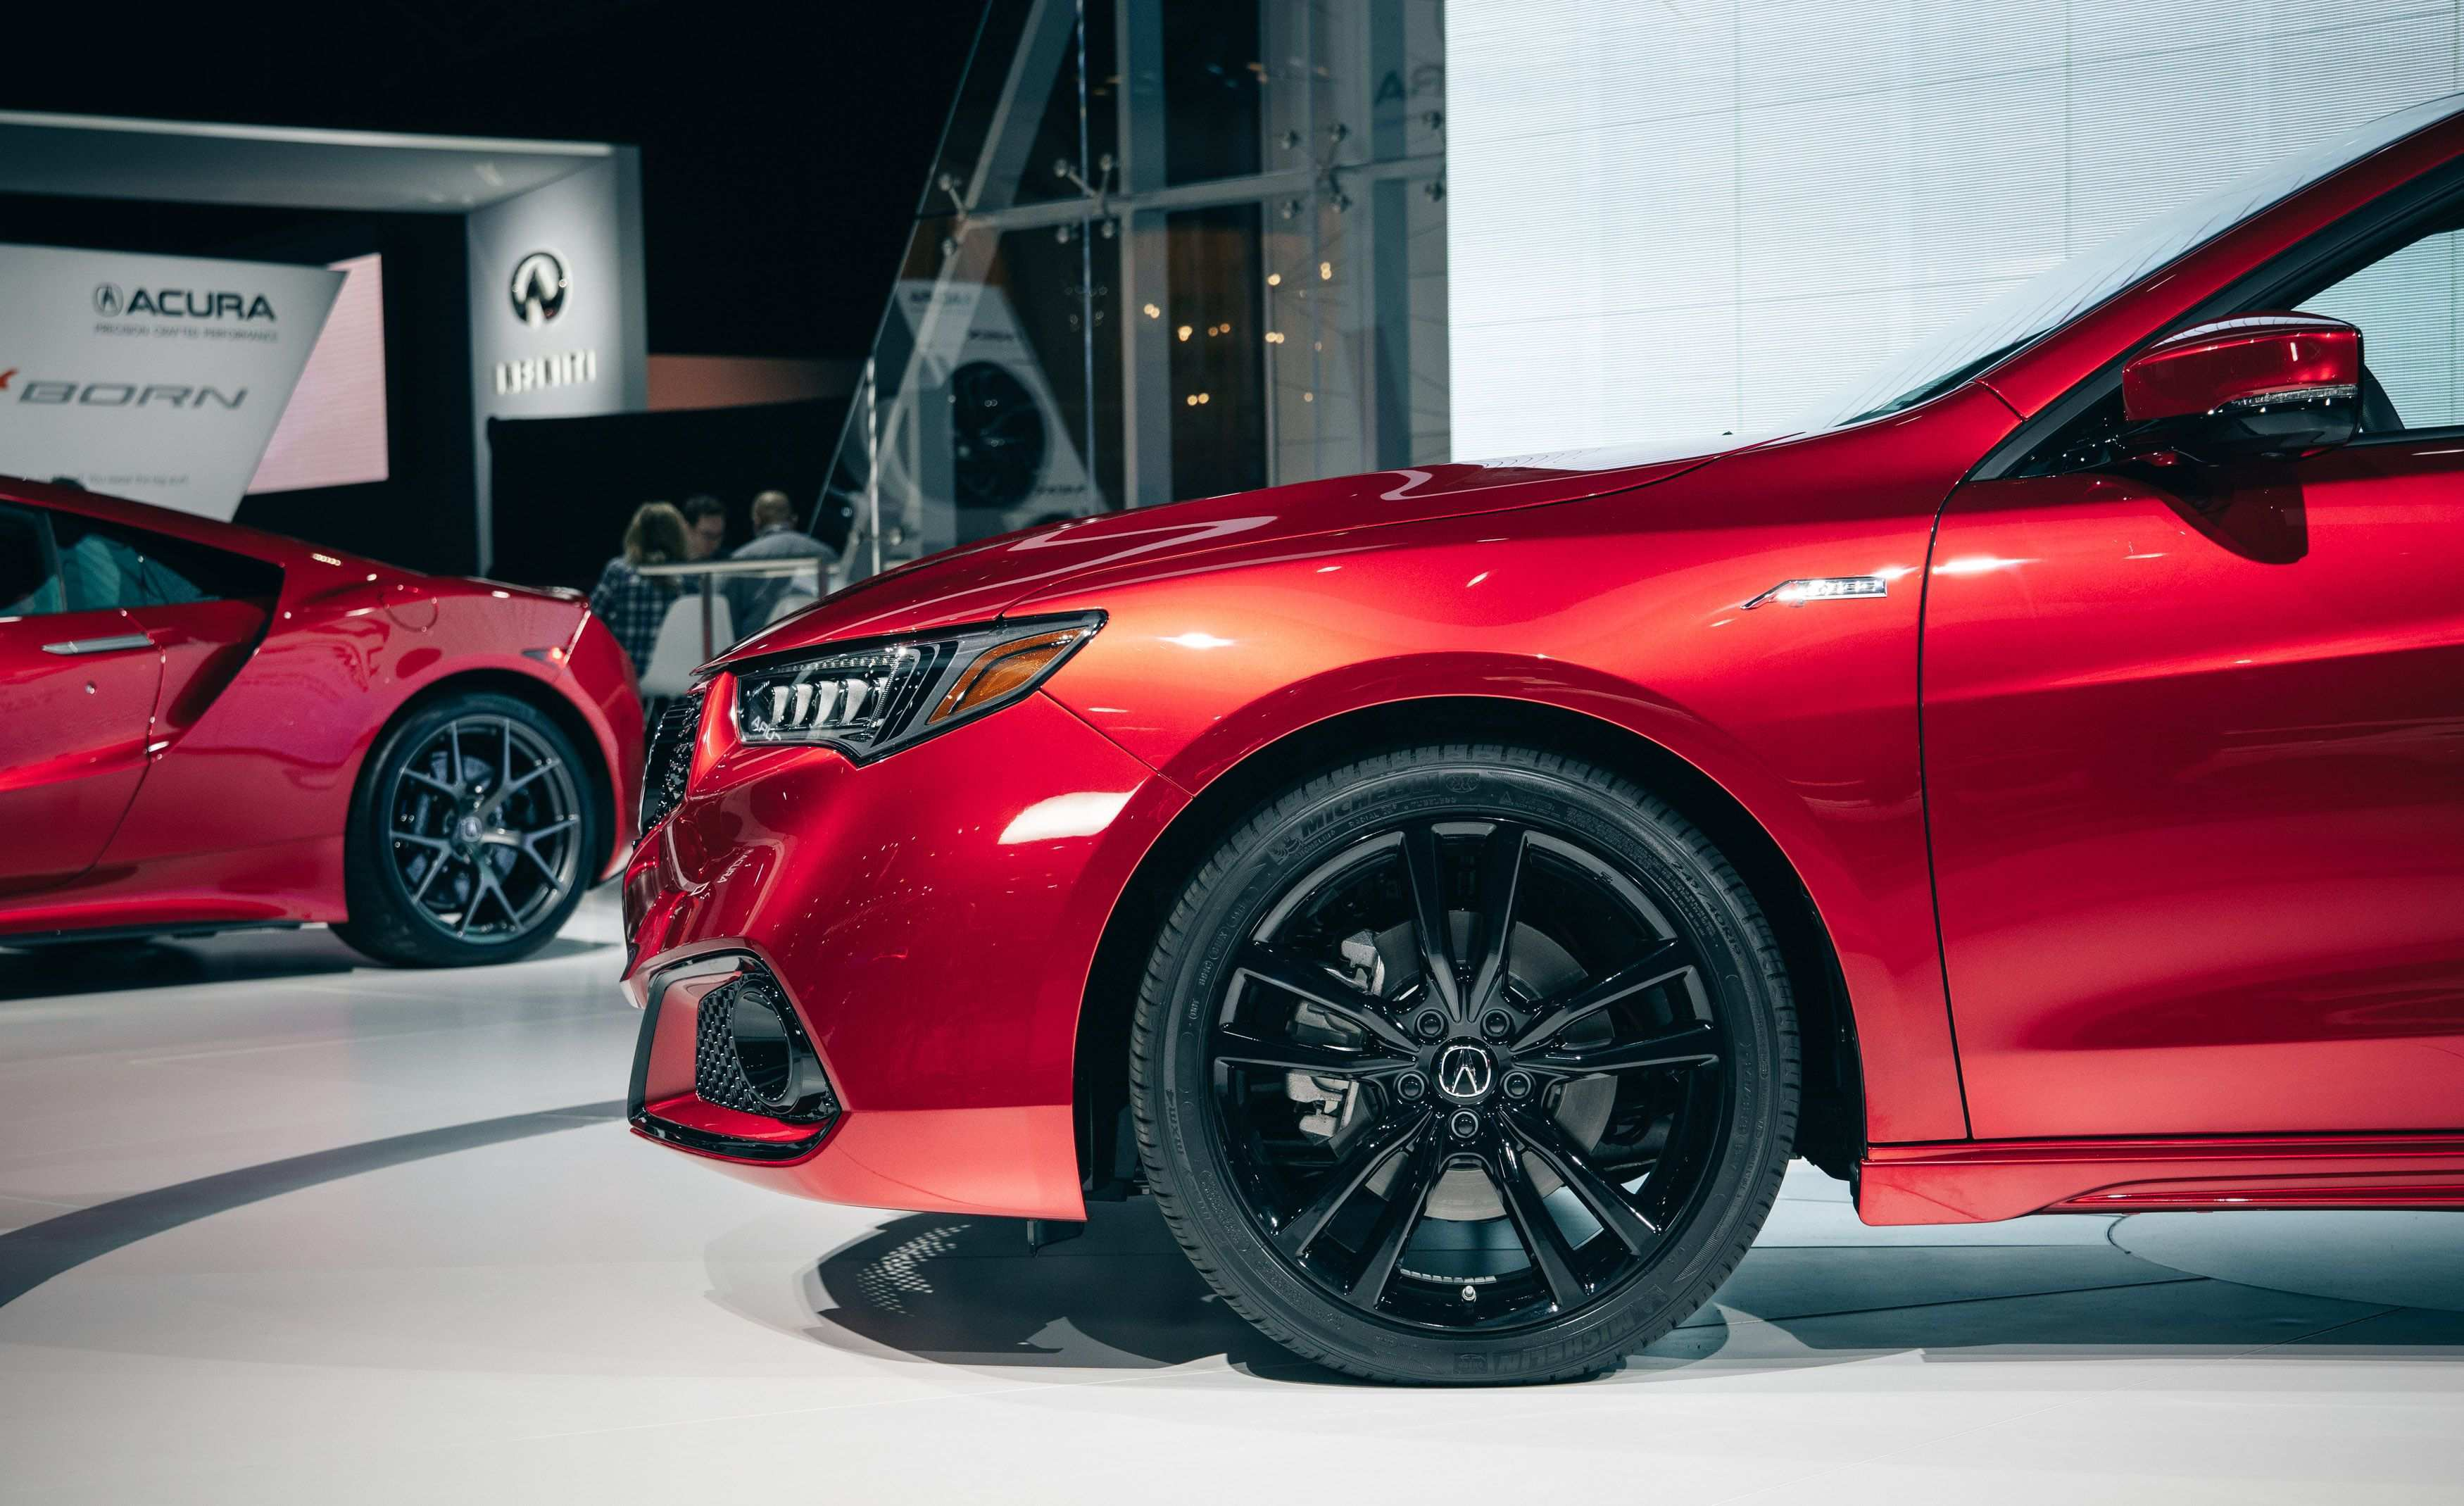 45 Great When Does The 2020 Acura Tlx Come Out Spesification with When Does The 2020 Acura Tlx Come Out